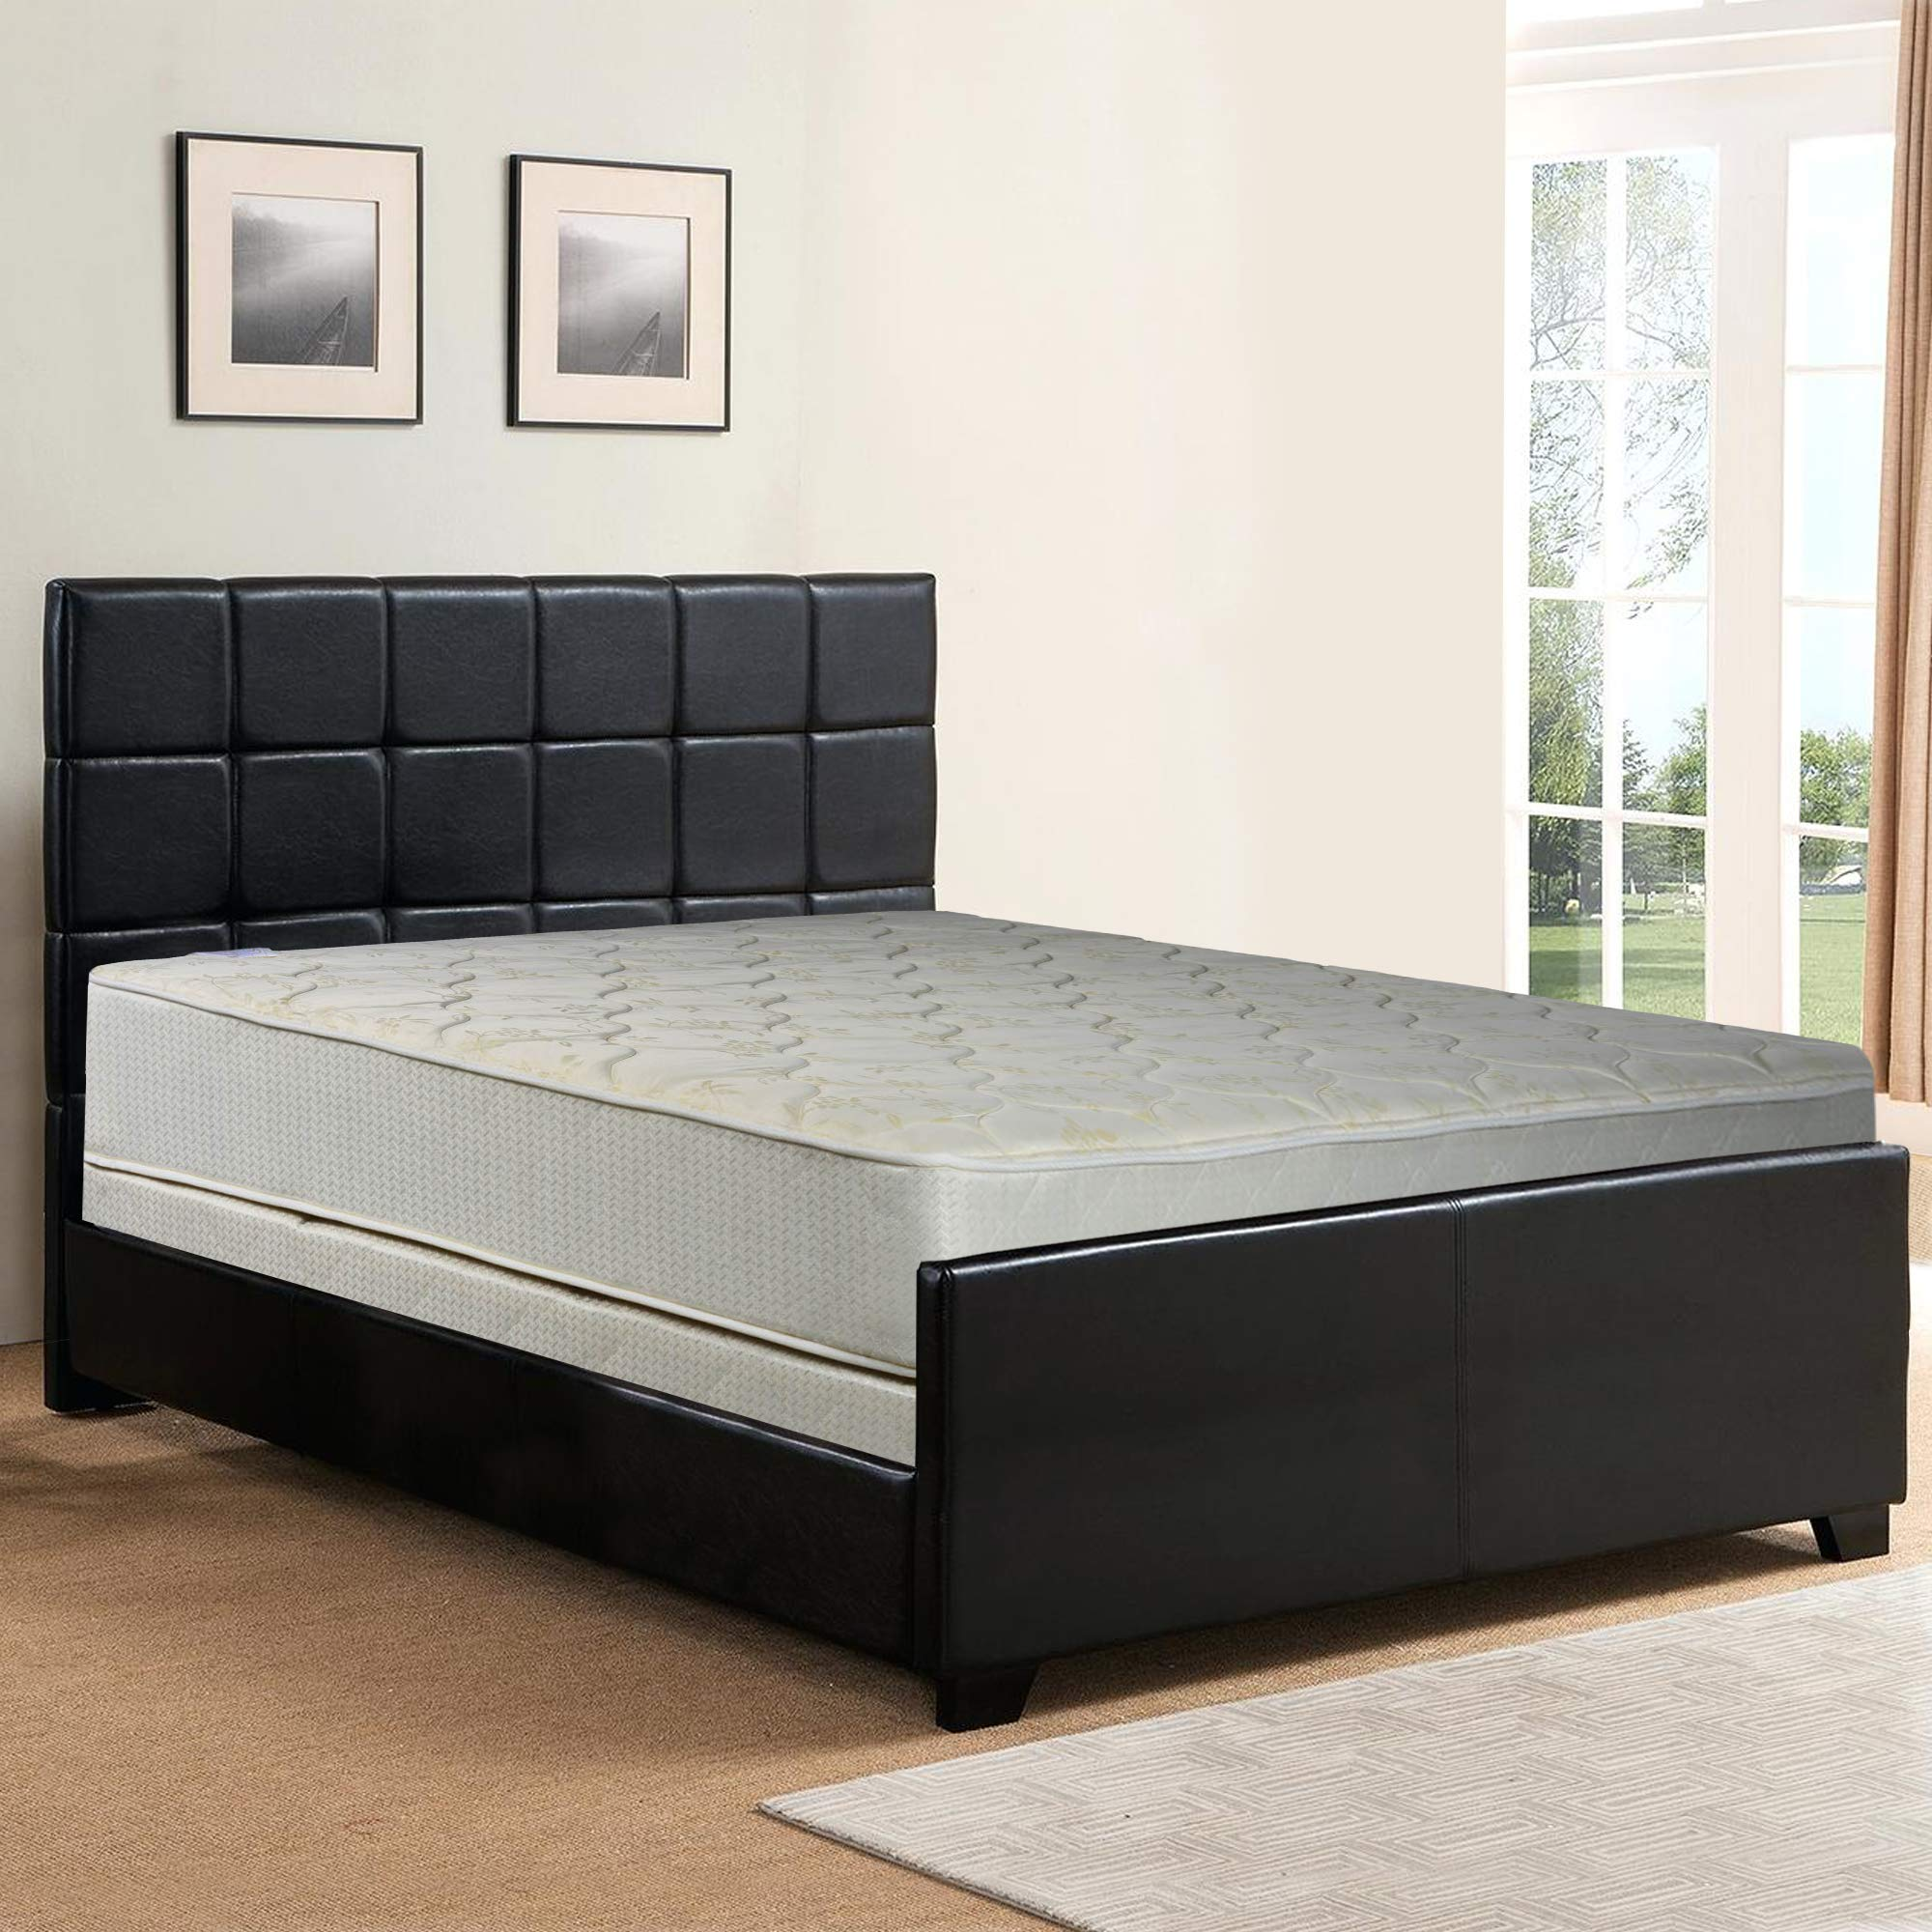 Spring Sleep, 9-Inch Gentle Firm Tight top Innerspring Mattress And 4-Inch Split Wood Traditional Box Spring/Foundation Set, Good For The Back, No Assembly Required, Twin Size 74'' x 38'' by Spring Sleep